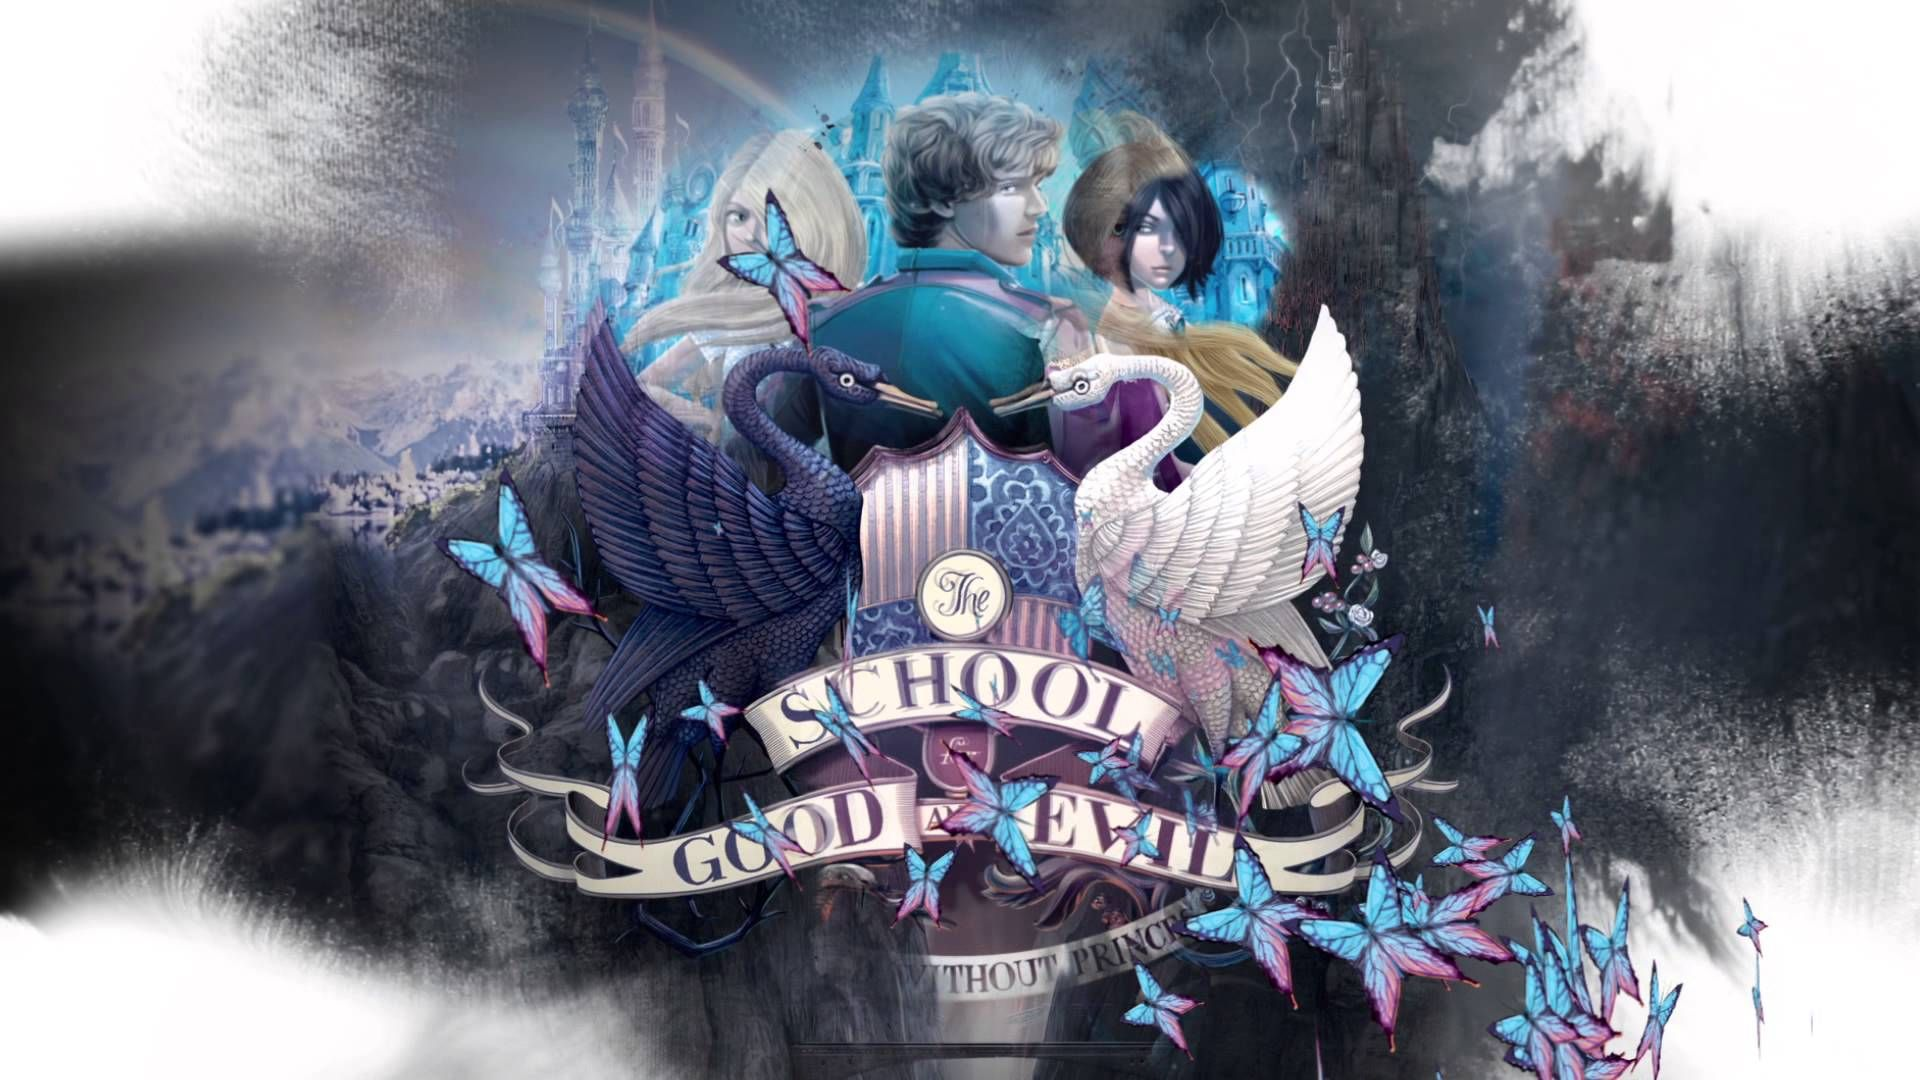 The School For Good And Evil Film